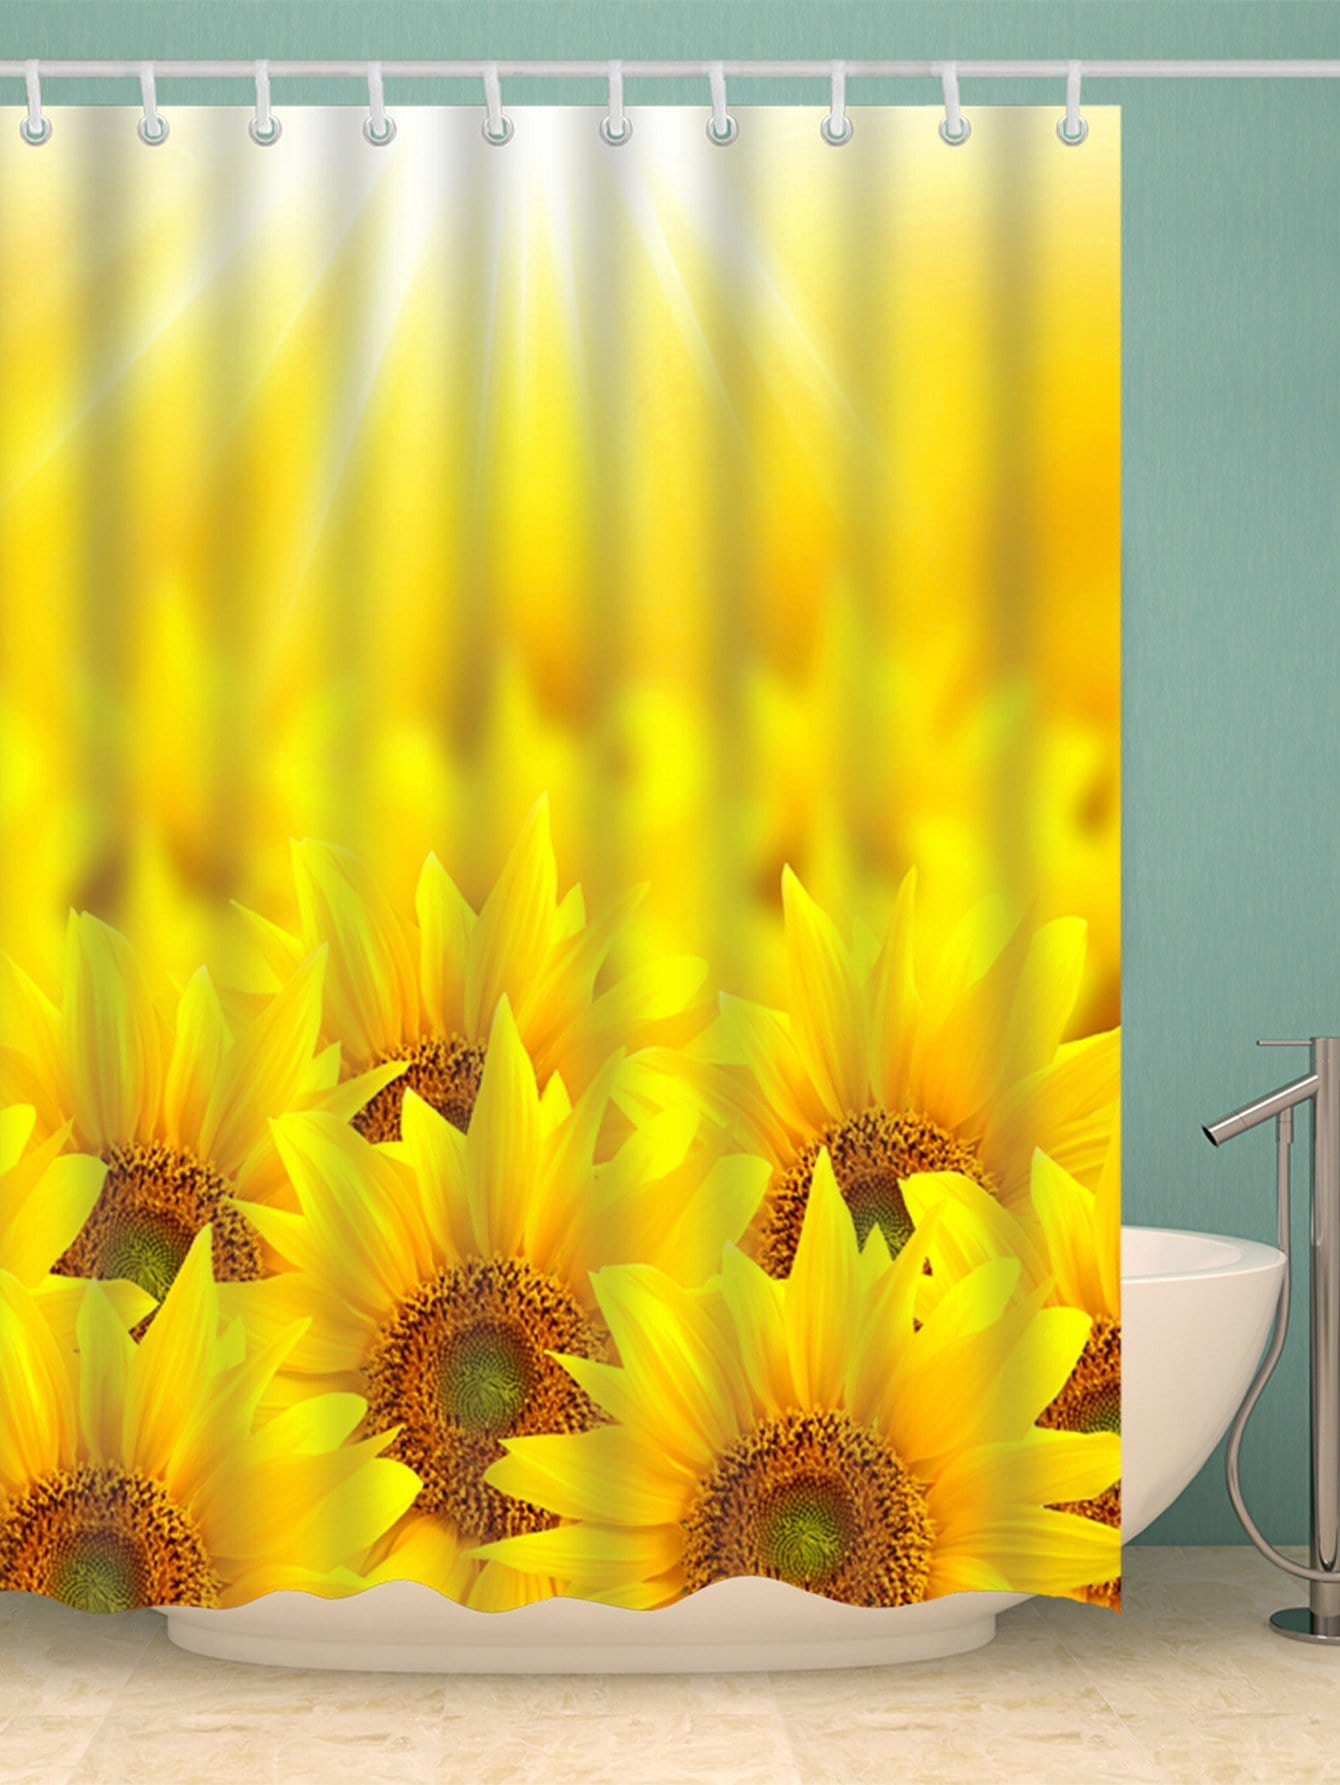 Sunflower Shower Curtain With Hook 12pcs geometric shower curtain with 12pcs hook